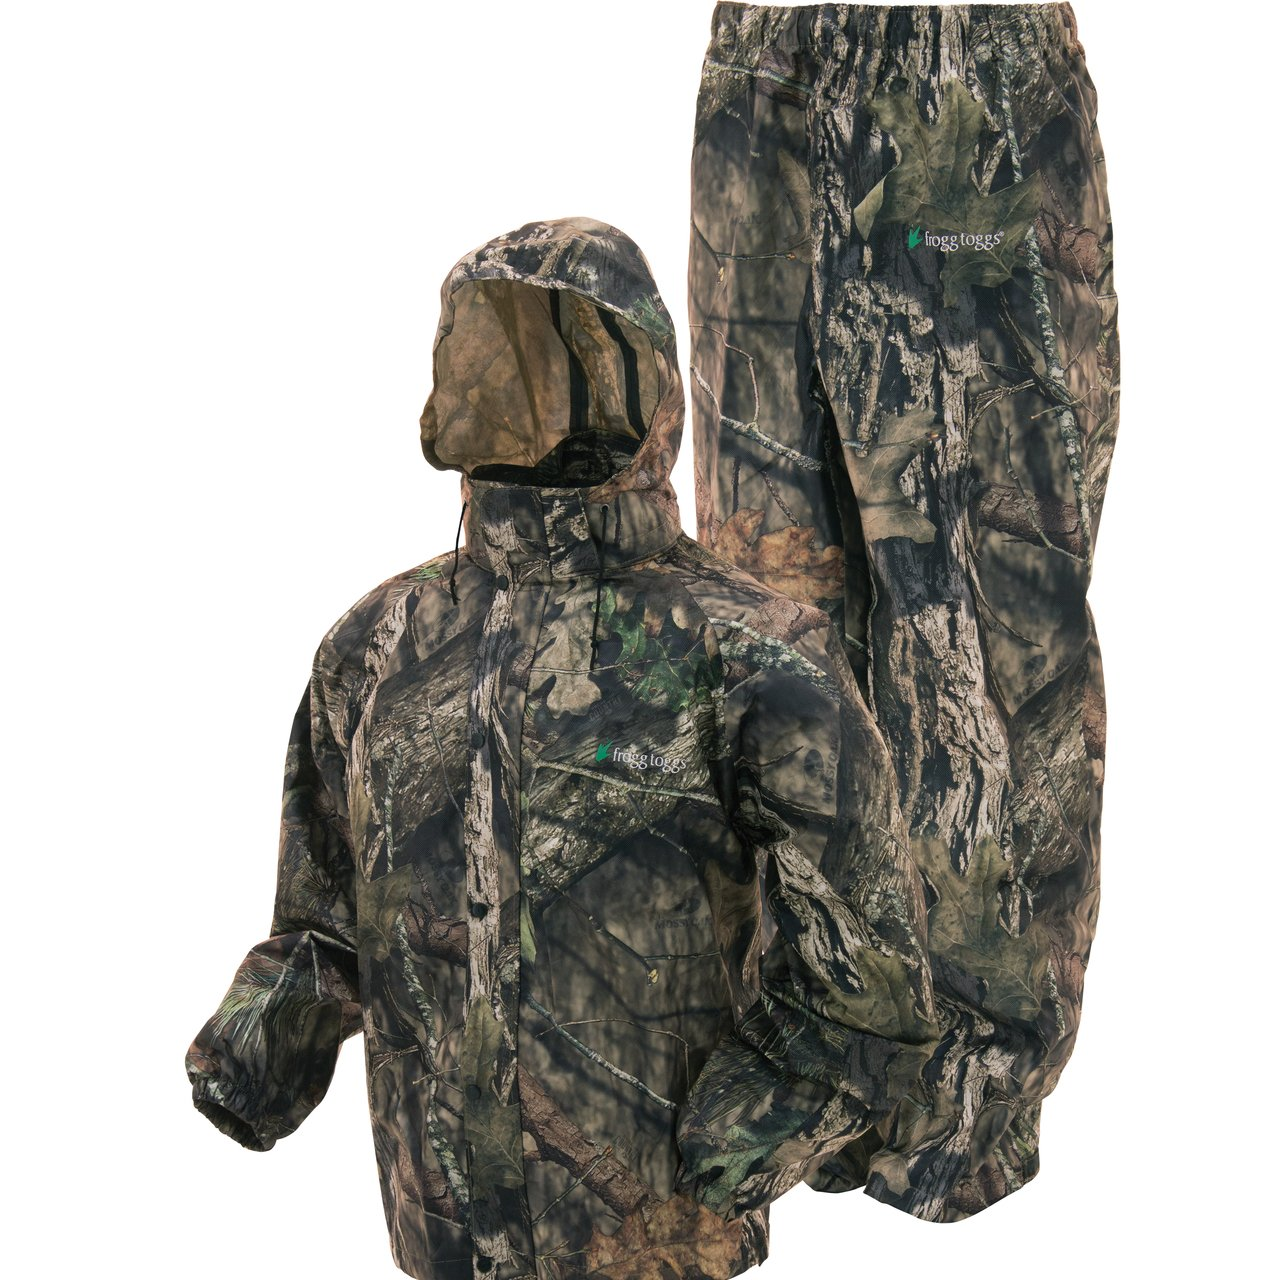 Frogg Toggs Frogg Toggs All Sport Rain Suit, Realtree Timber, Size Small All Sport Rain Suit, Realtree Timber, Small by Frogg Toggs (Image #2)